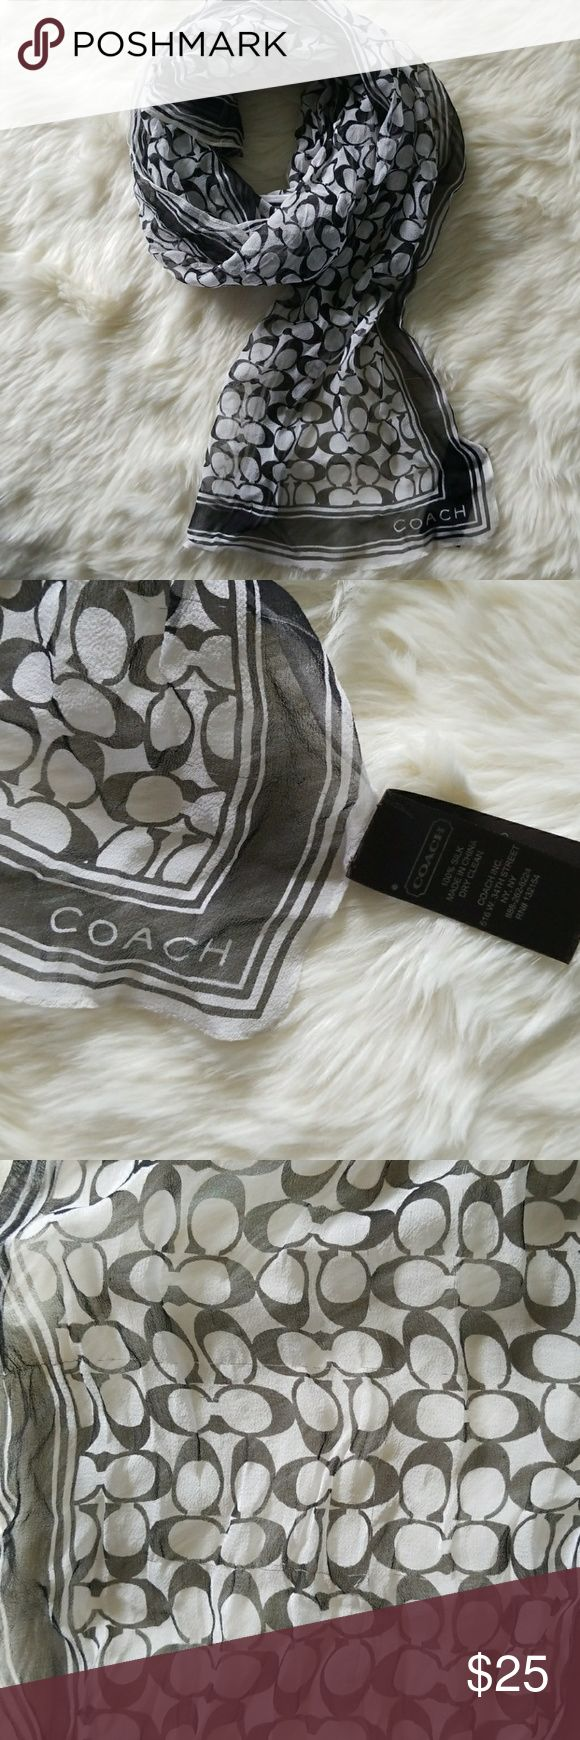 Black and White Coach Scarf Cute black and white scarf from Coach.  Lightweight and a perfect adornment for your purse!  A few pulls throughout, although only used a few times so otherwise excellent condition. Coach Accessories Scarves & Wraps